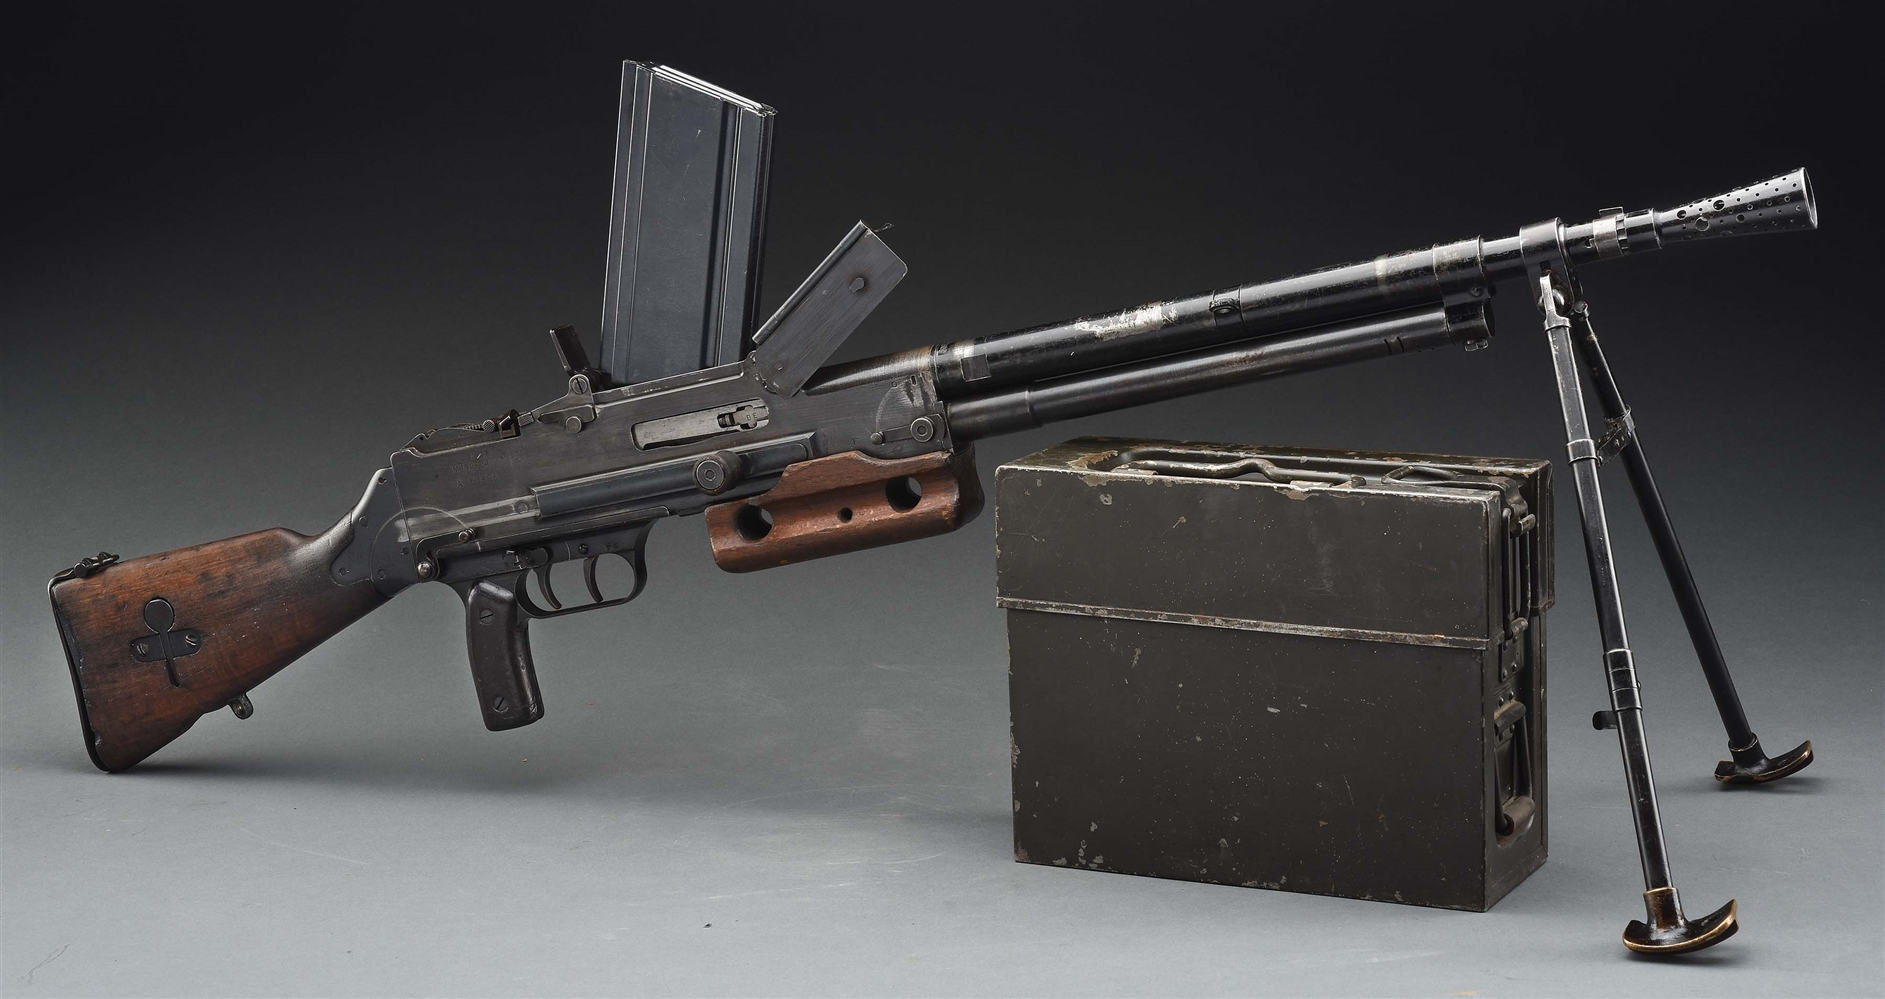 (N) VERY SCARCE CHATELLERAULT MODEL 24/29 MACHINE GUN (CURIO AND RELIC)